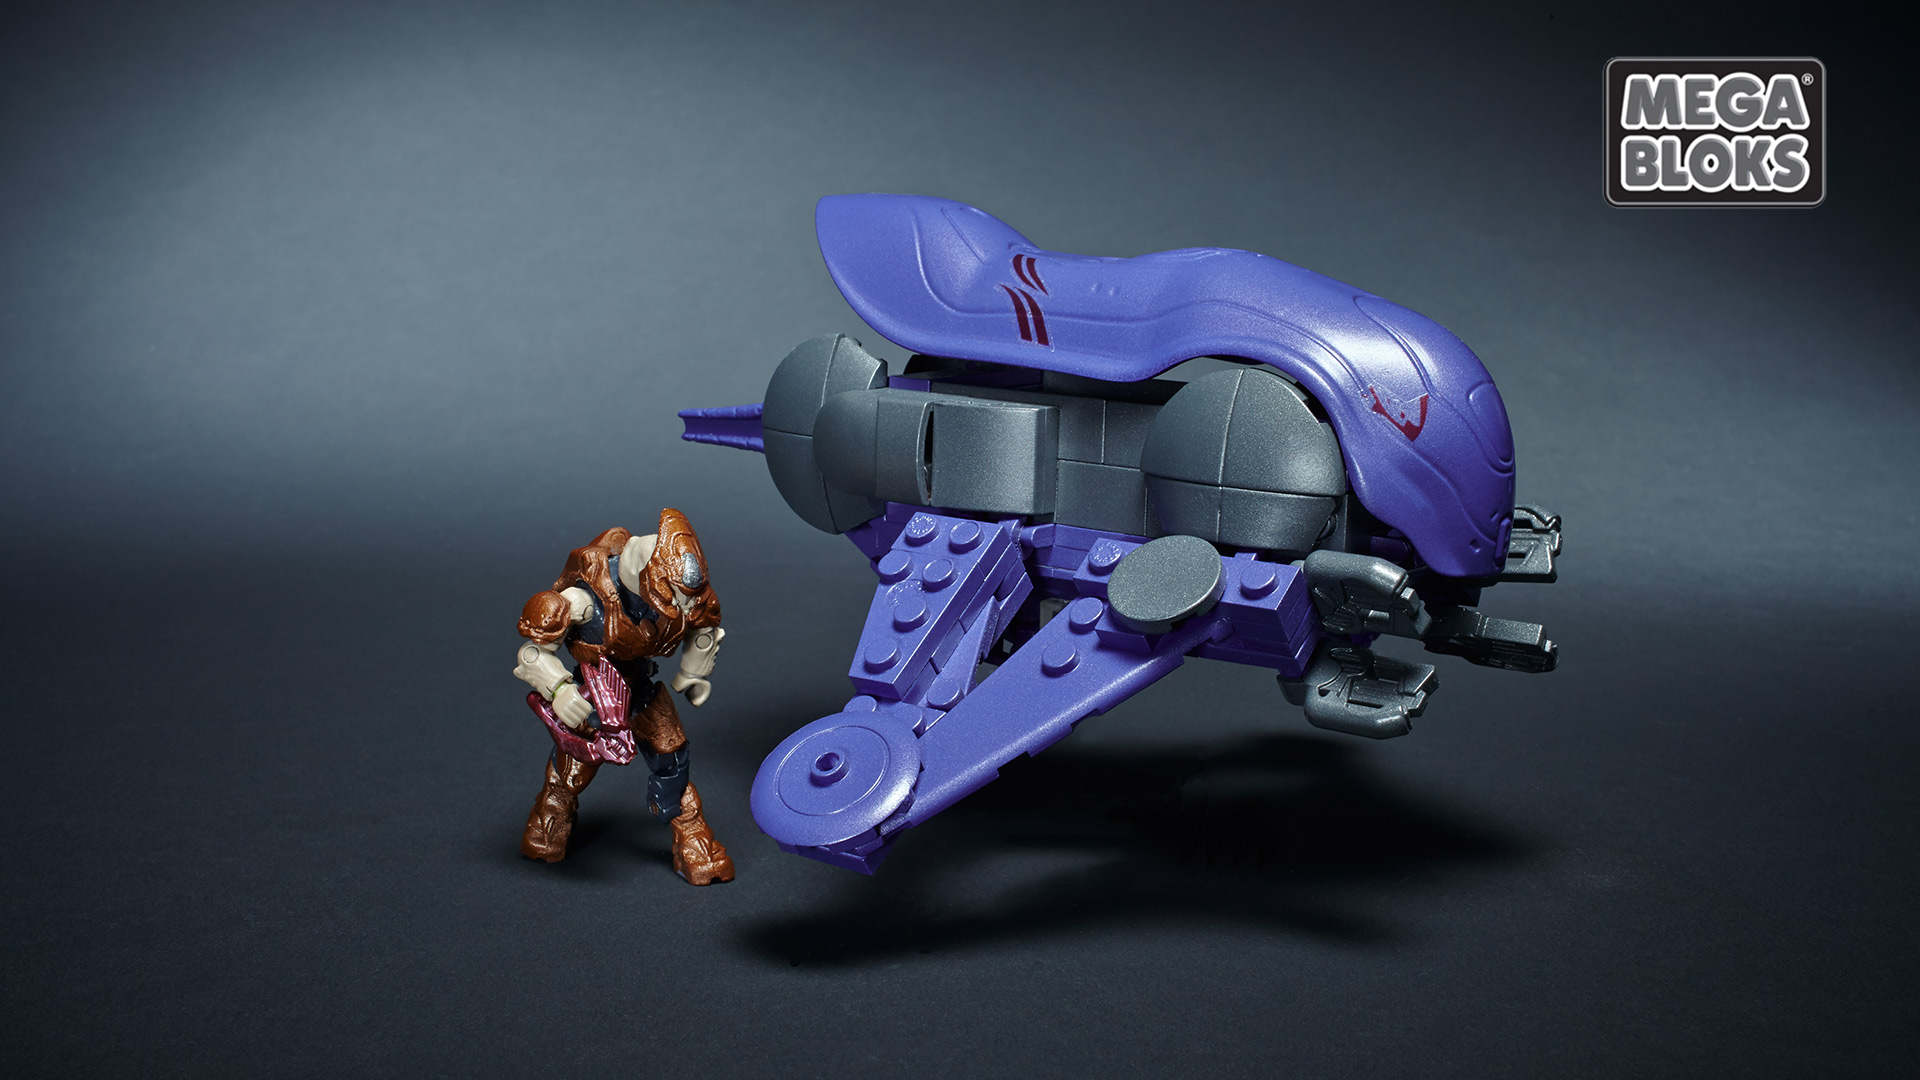 Halo Mega Bloks Covenant Banshee Playset